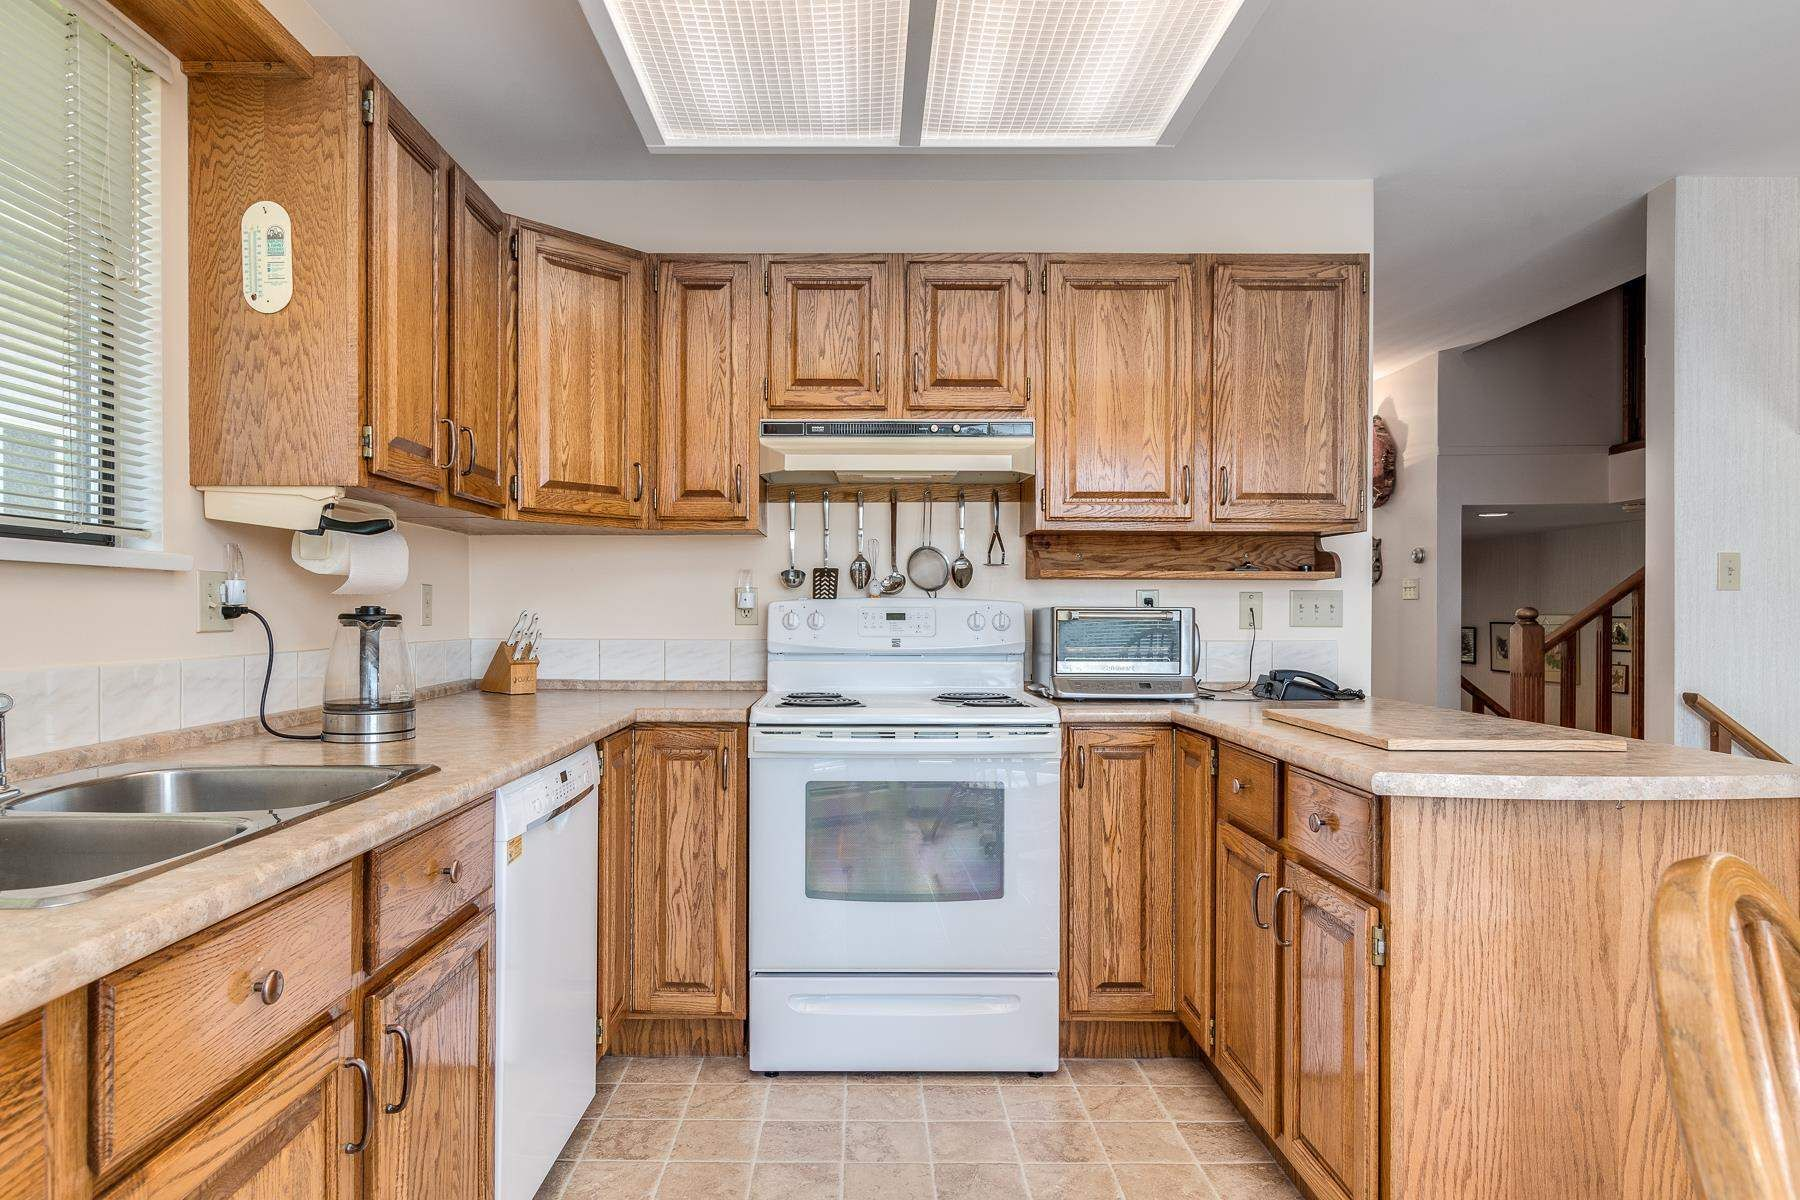 """Photo 13: Photos: 378 BALFOUR Drive in Coquitlam: Coquitlam East House for sale in """"DARTMOOR HEIGHTS"""" : MLS®# R2600428"""